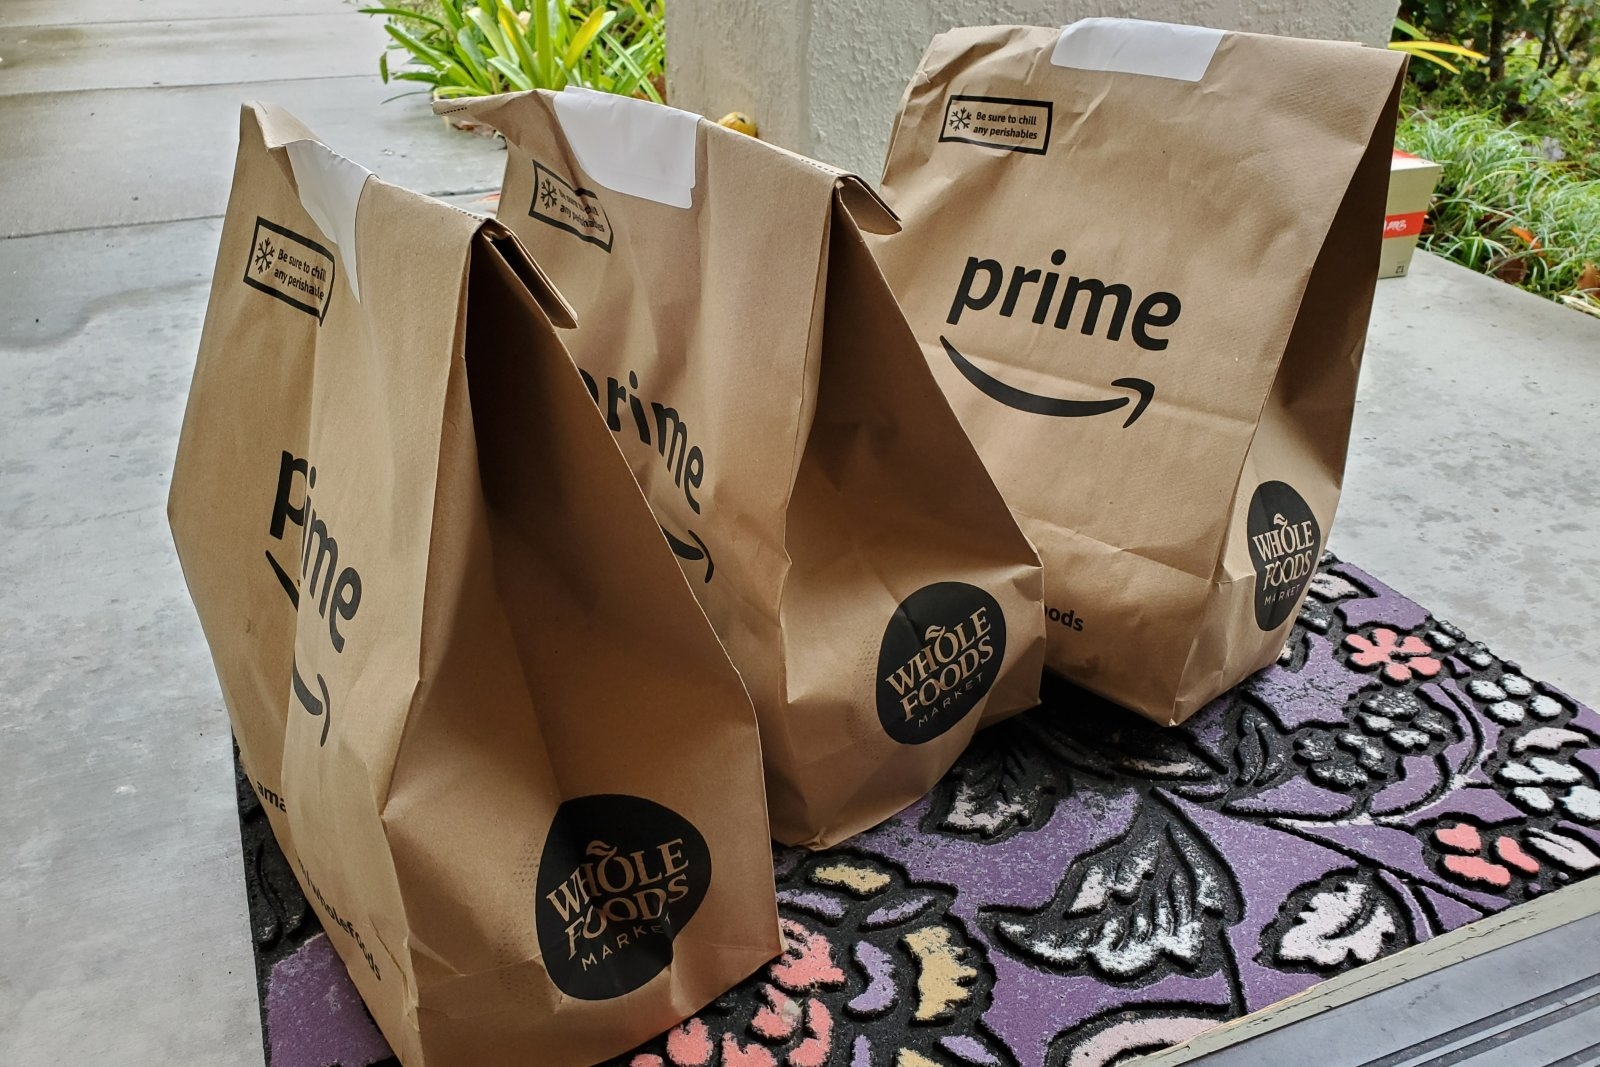 Amazon offers warehouse workers higher pay to handle Prime Now groceries | DeviceDaily.com